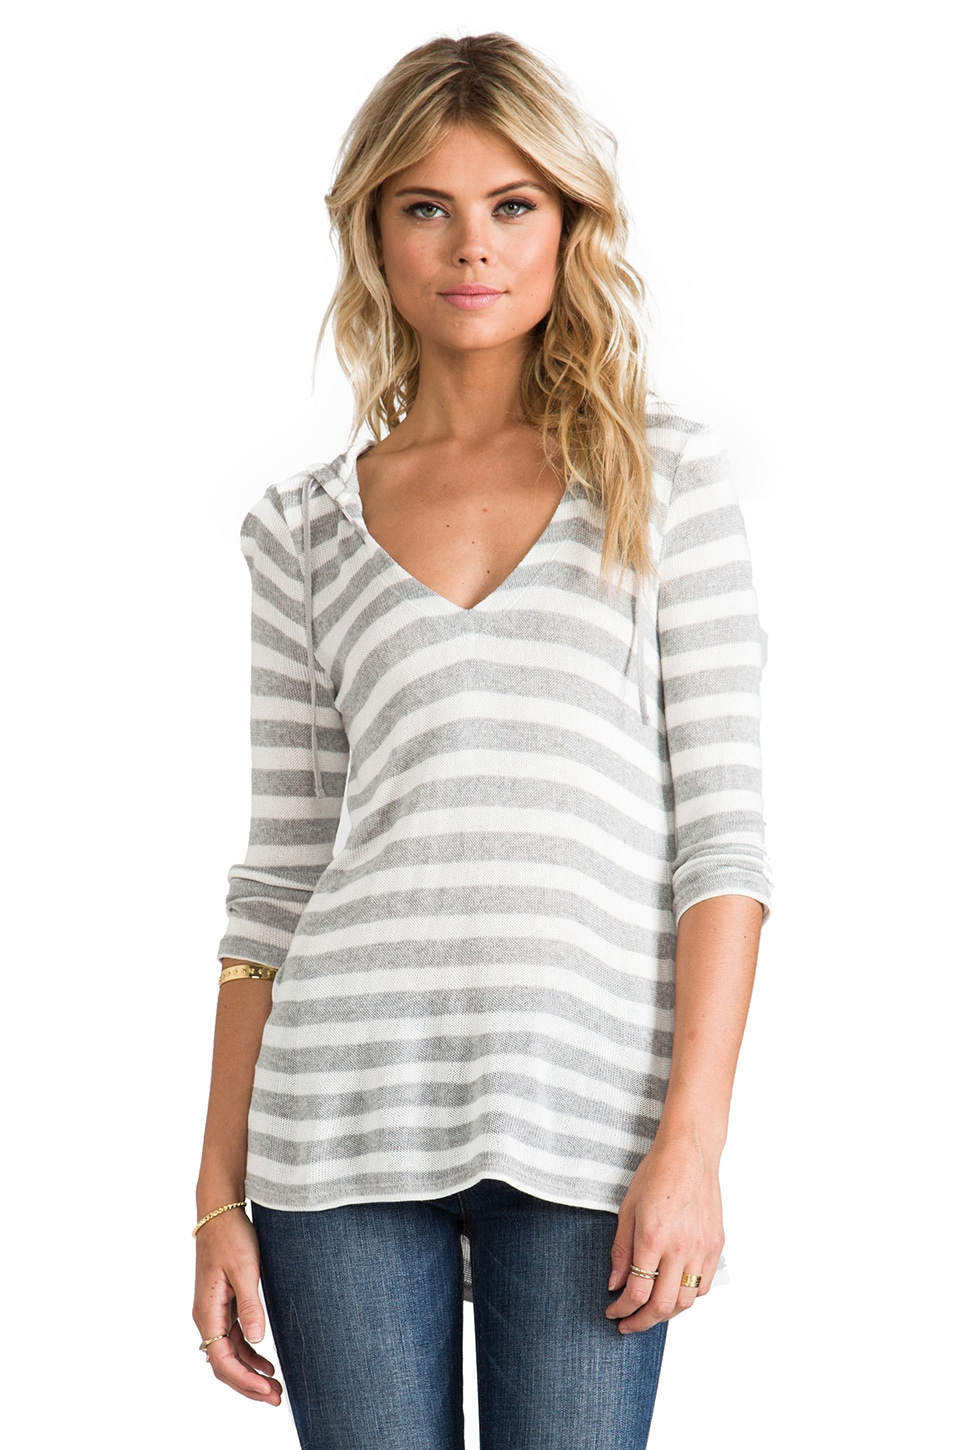 Soft Joie Bromley Top in Heather Grey/Porcelain